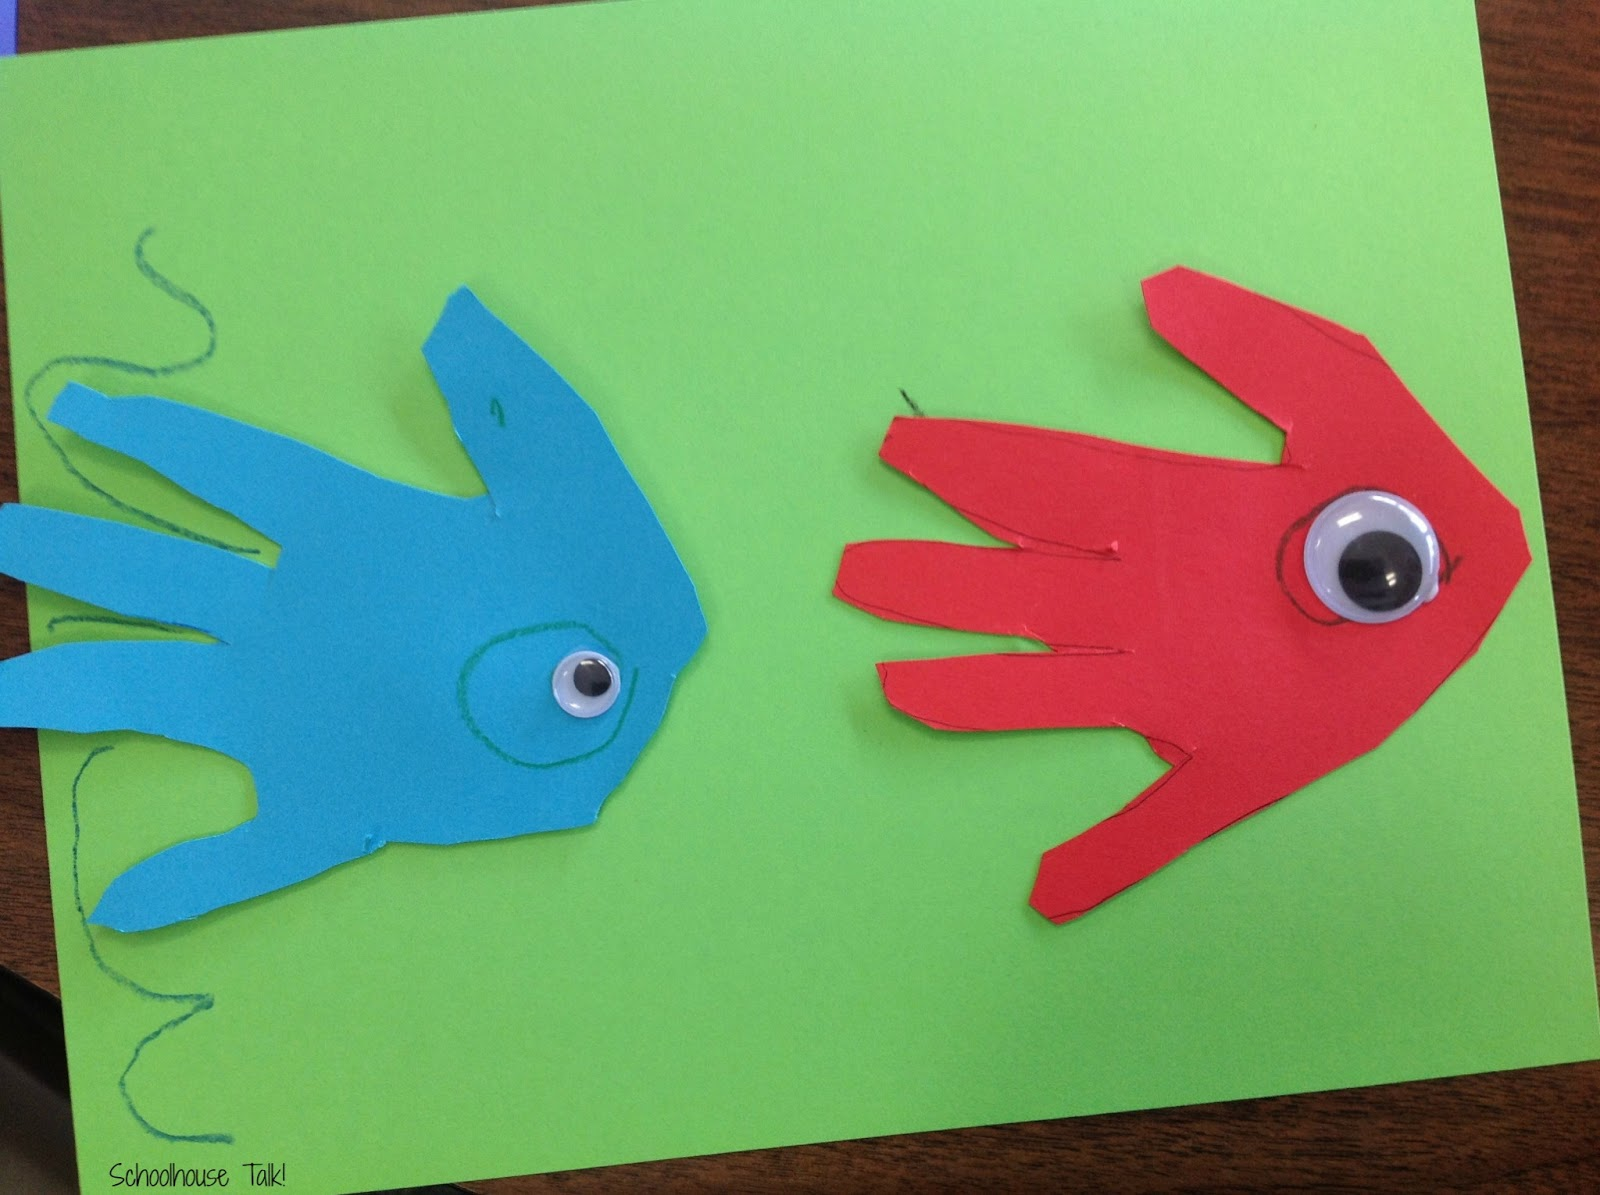 Schoolhouse talk dr seuss speech activities part 2 for One fish two fish red fish blue fish